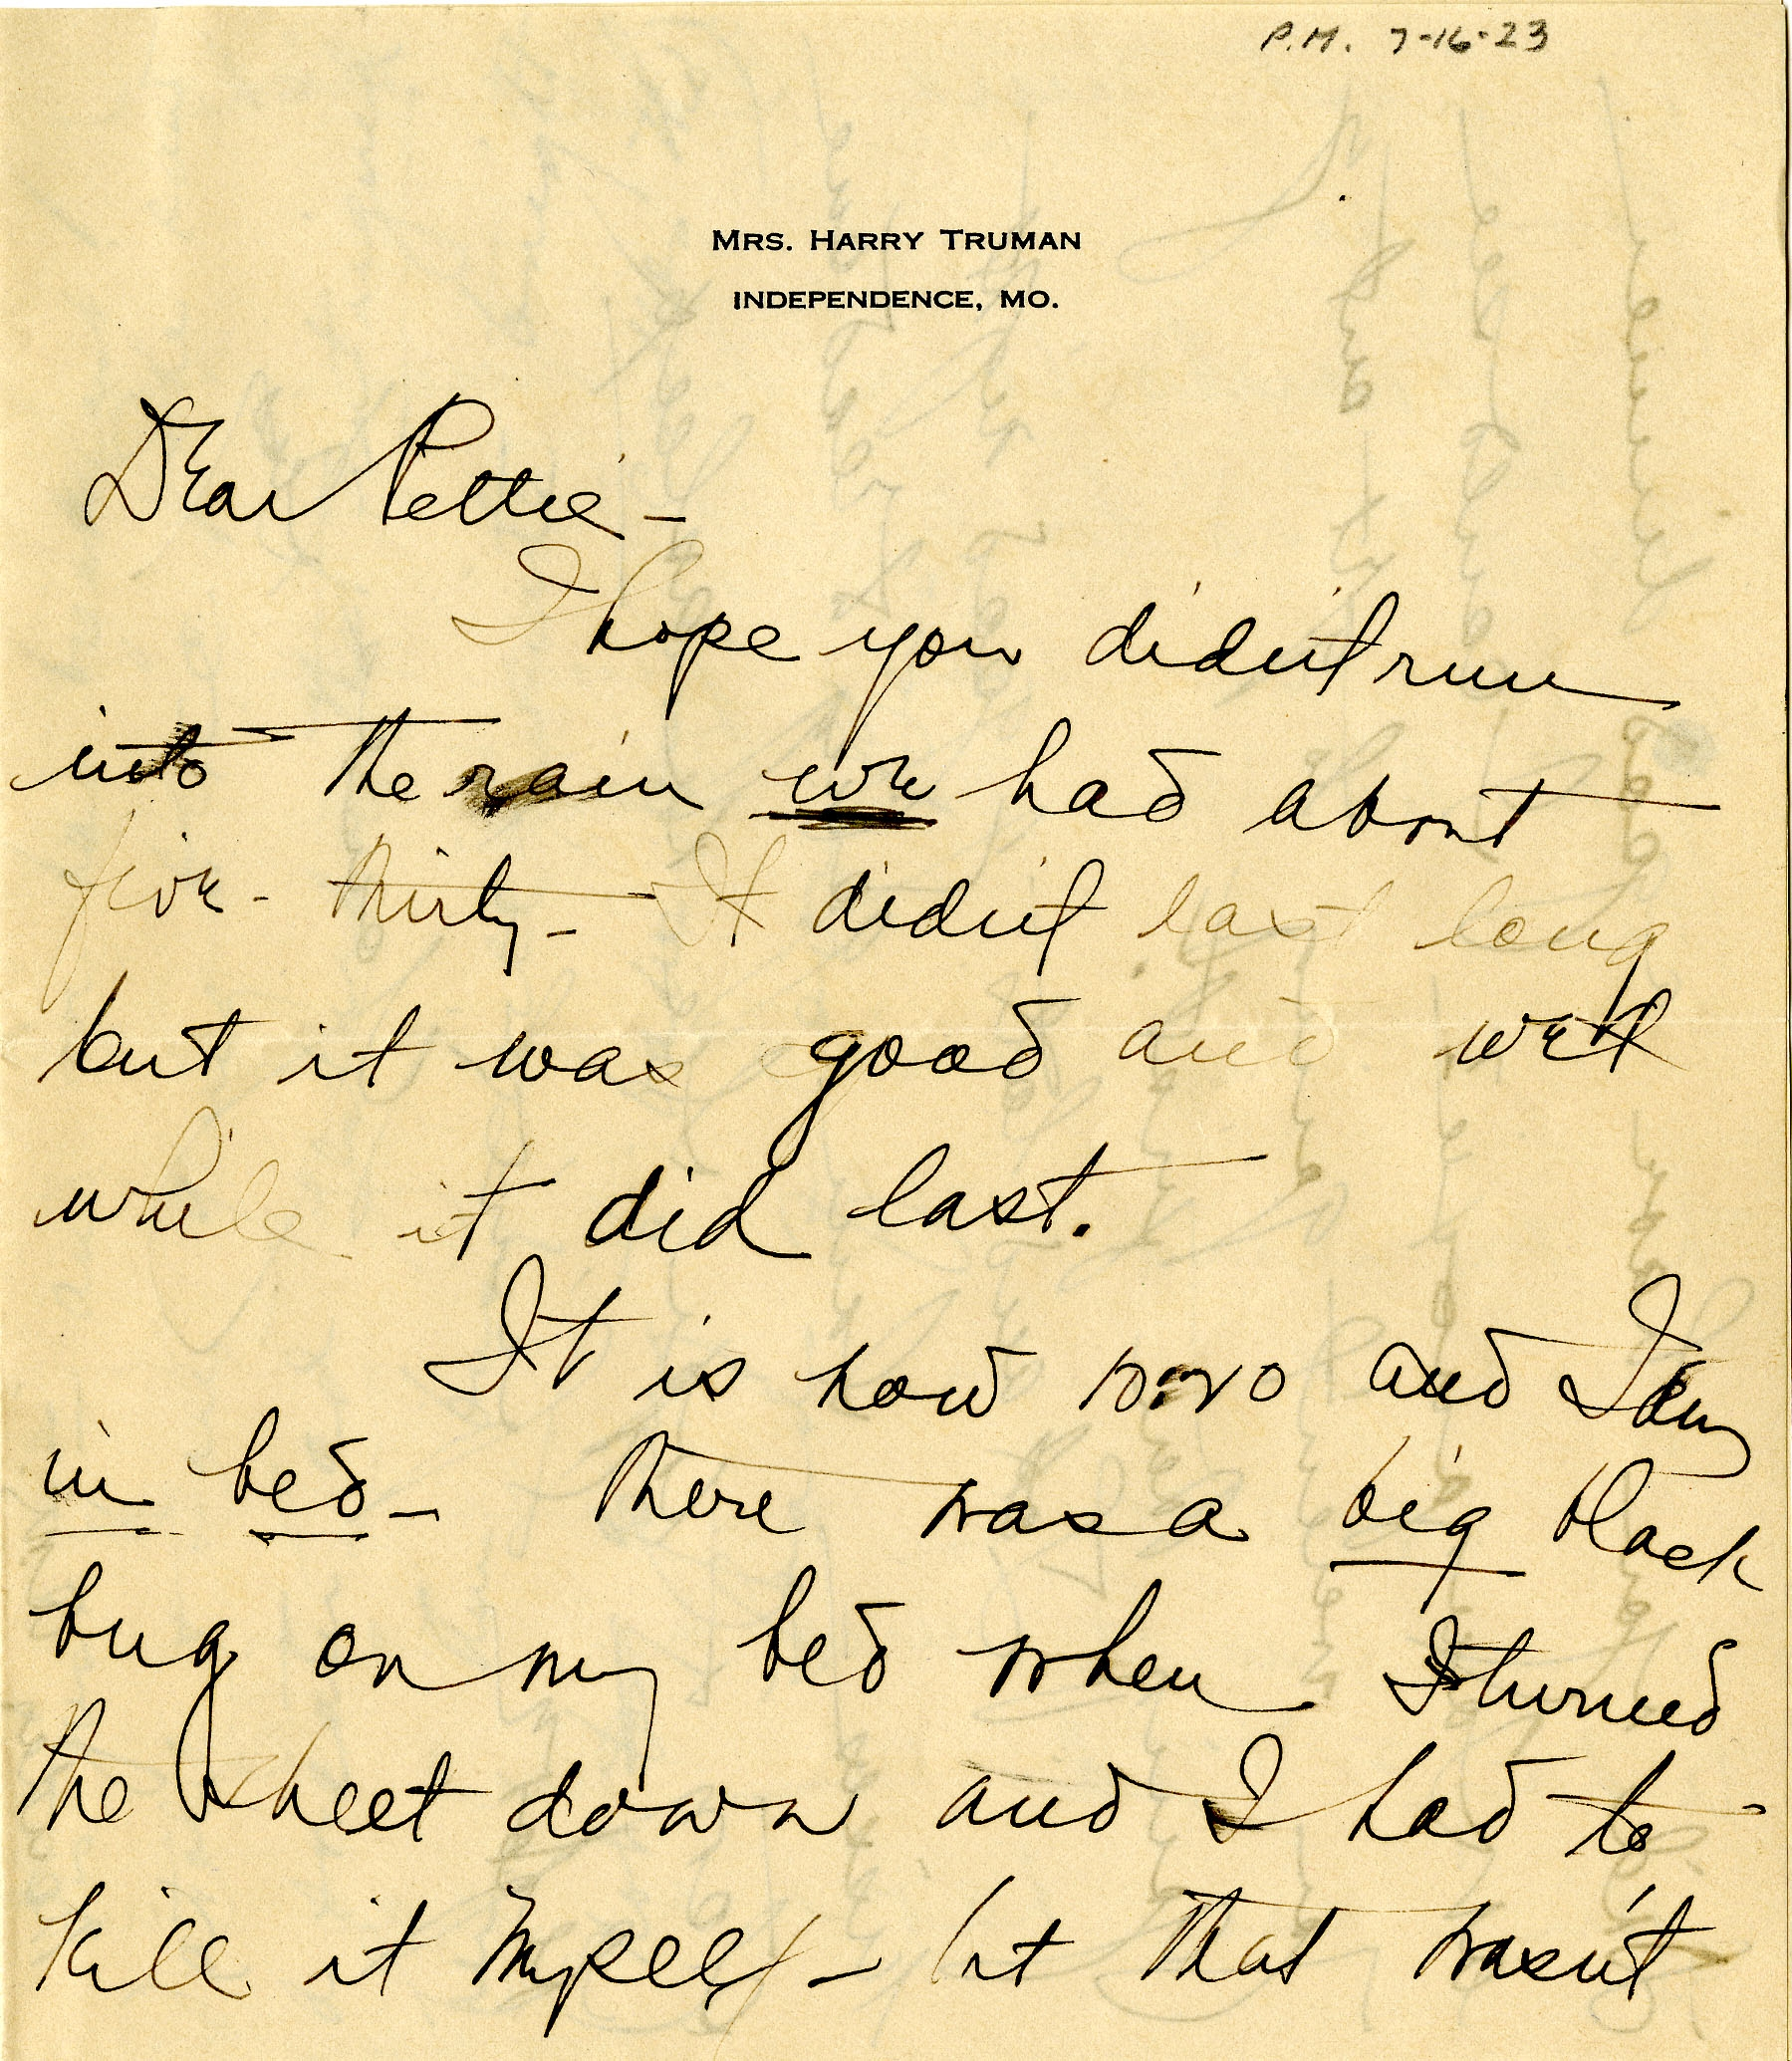 Former First Lady Bess TrumanS Letters To President Harry Truman